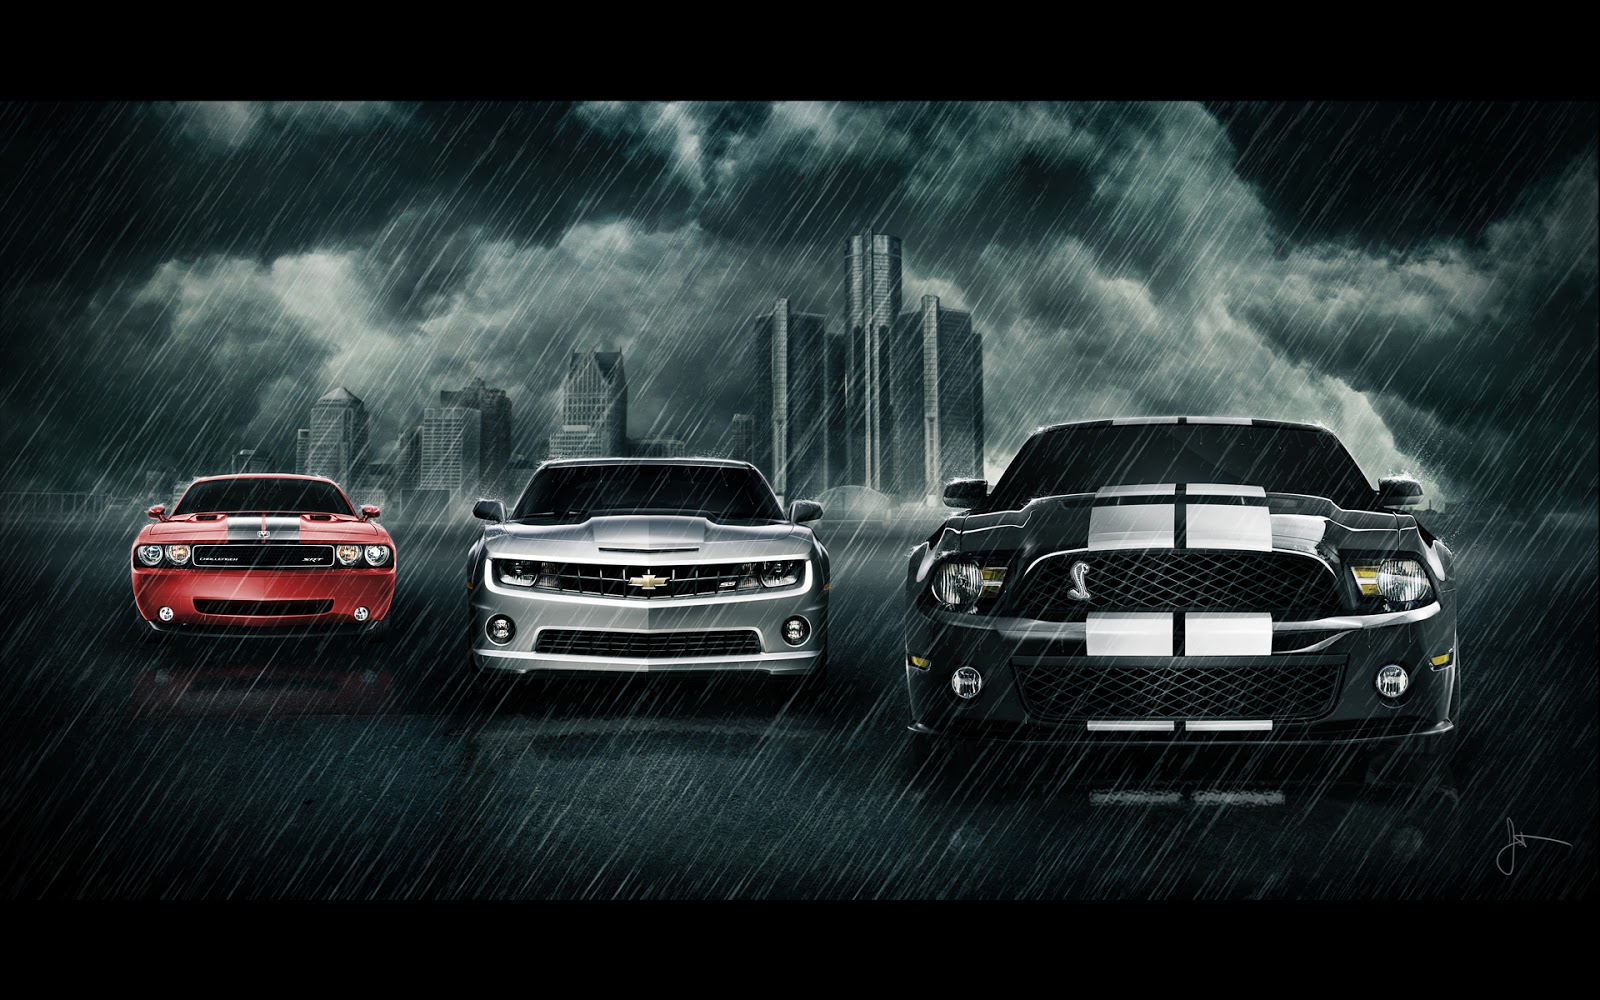 http://4.bp.blogspot.com/-bNInVylOs2E/UVRObrEEd1I/AAAAAAAALSQ/UCiiFsLSfOg/s1600/Ford+Mustang+Muscle+Car+Wallpapers8.jpg